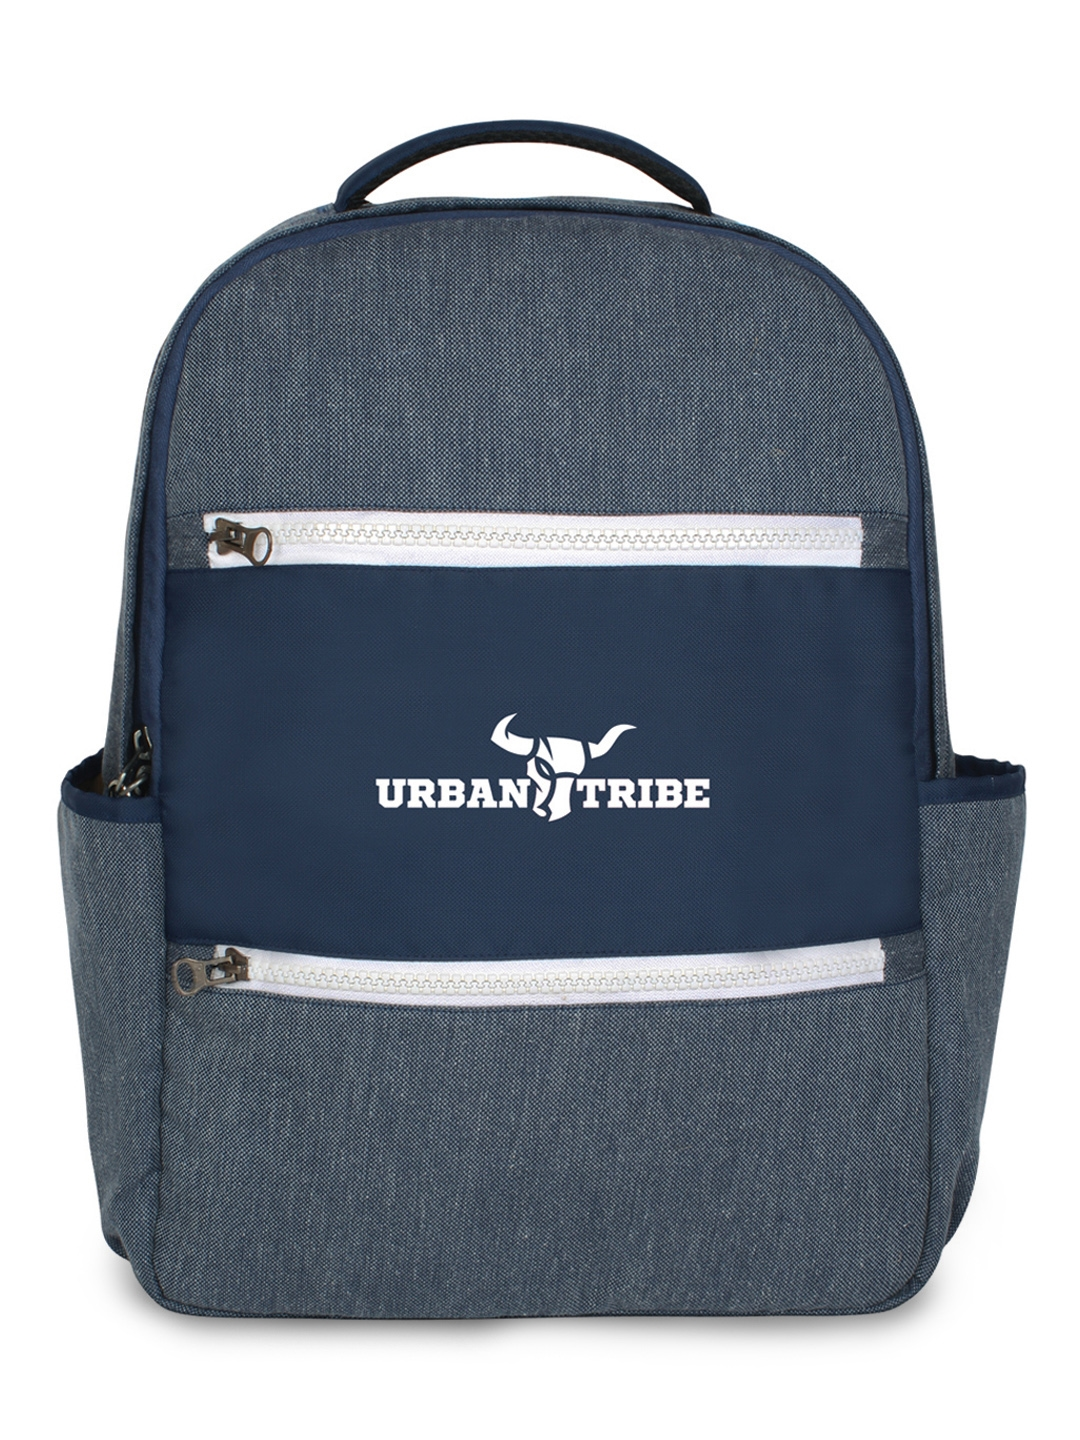 URBAN TRIBE Unisex Blue Solid Backpack